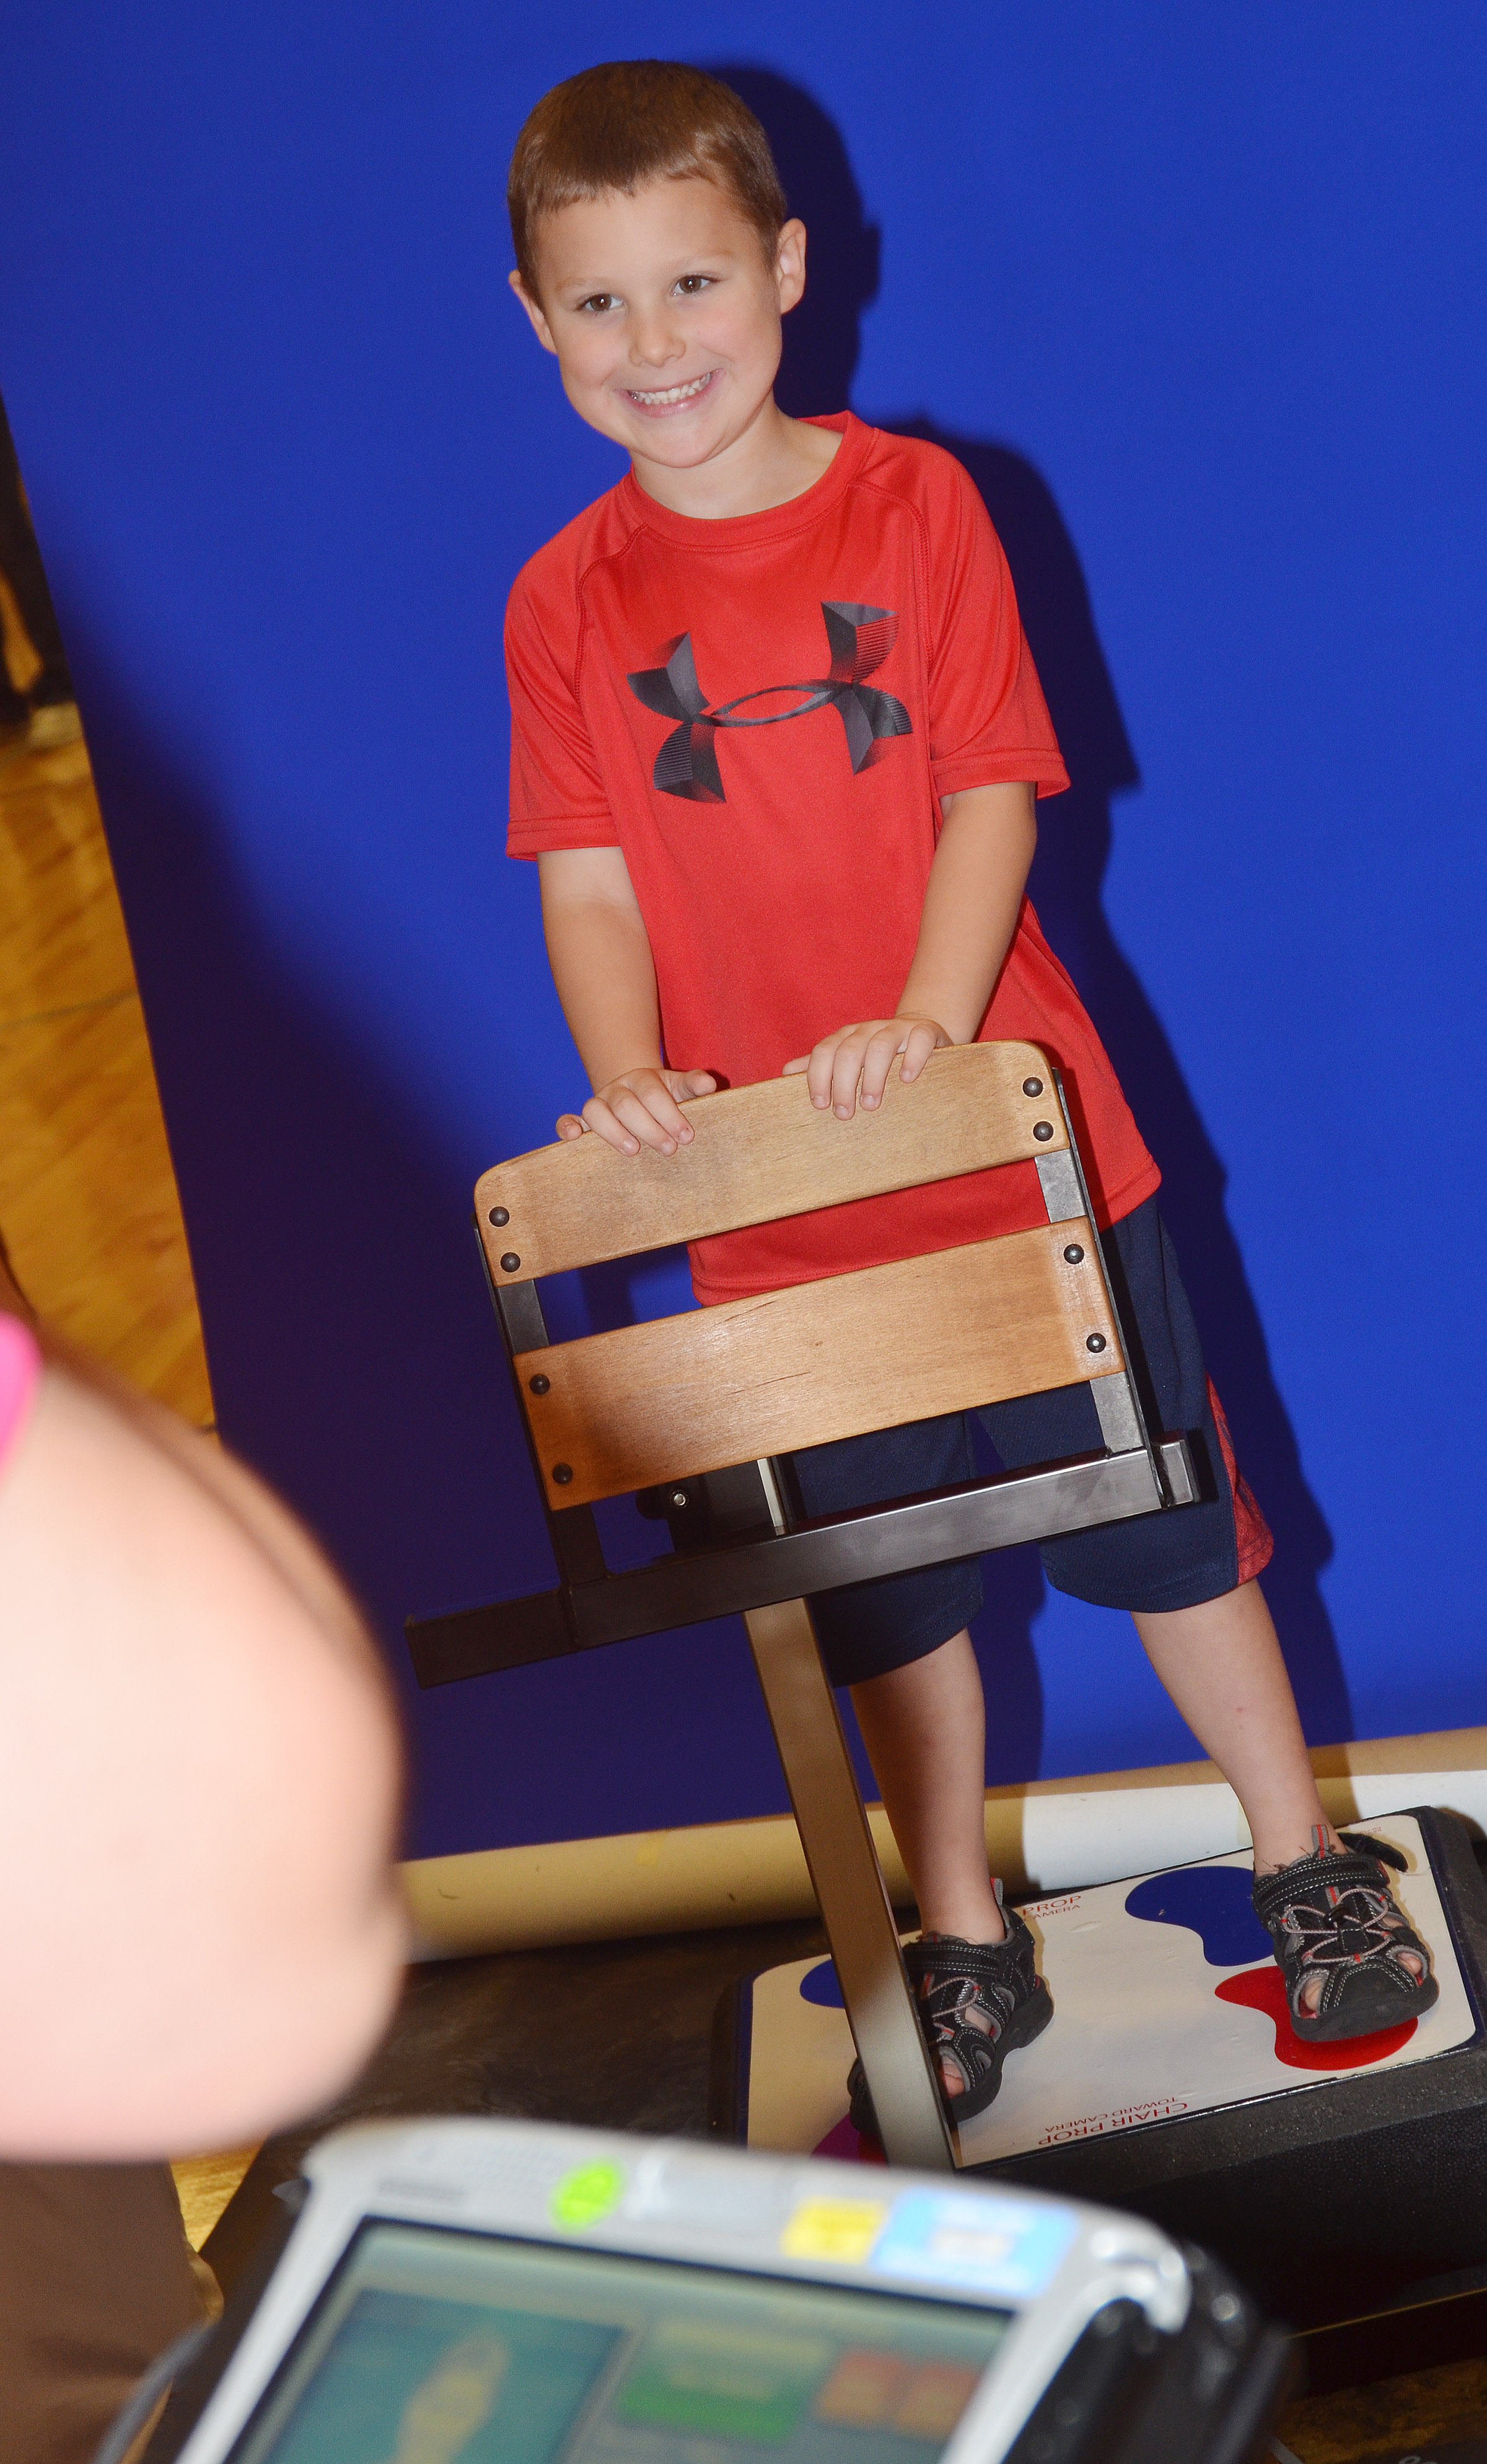 CES kindergartener Kyler Wilson smiles for the camera.